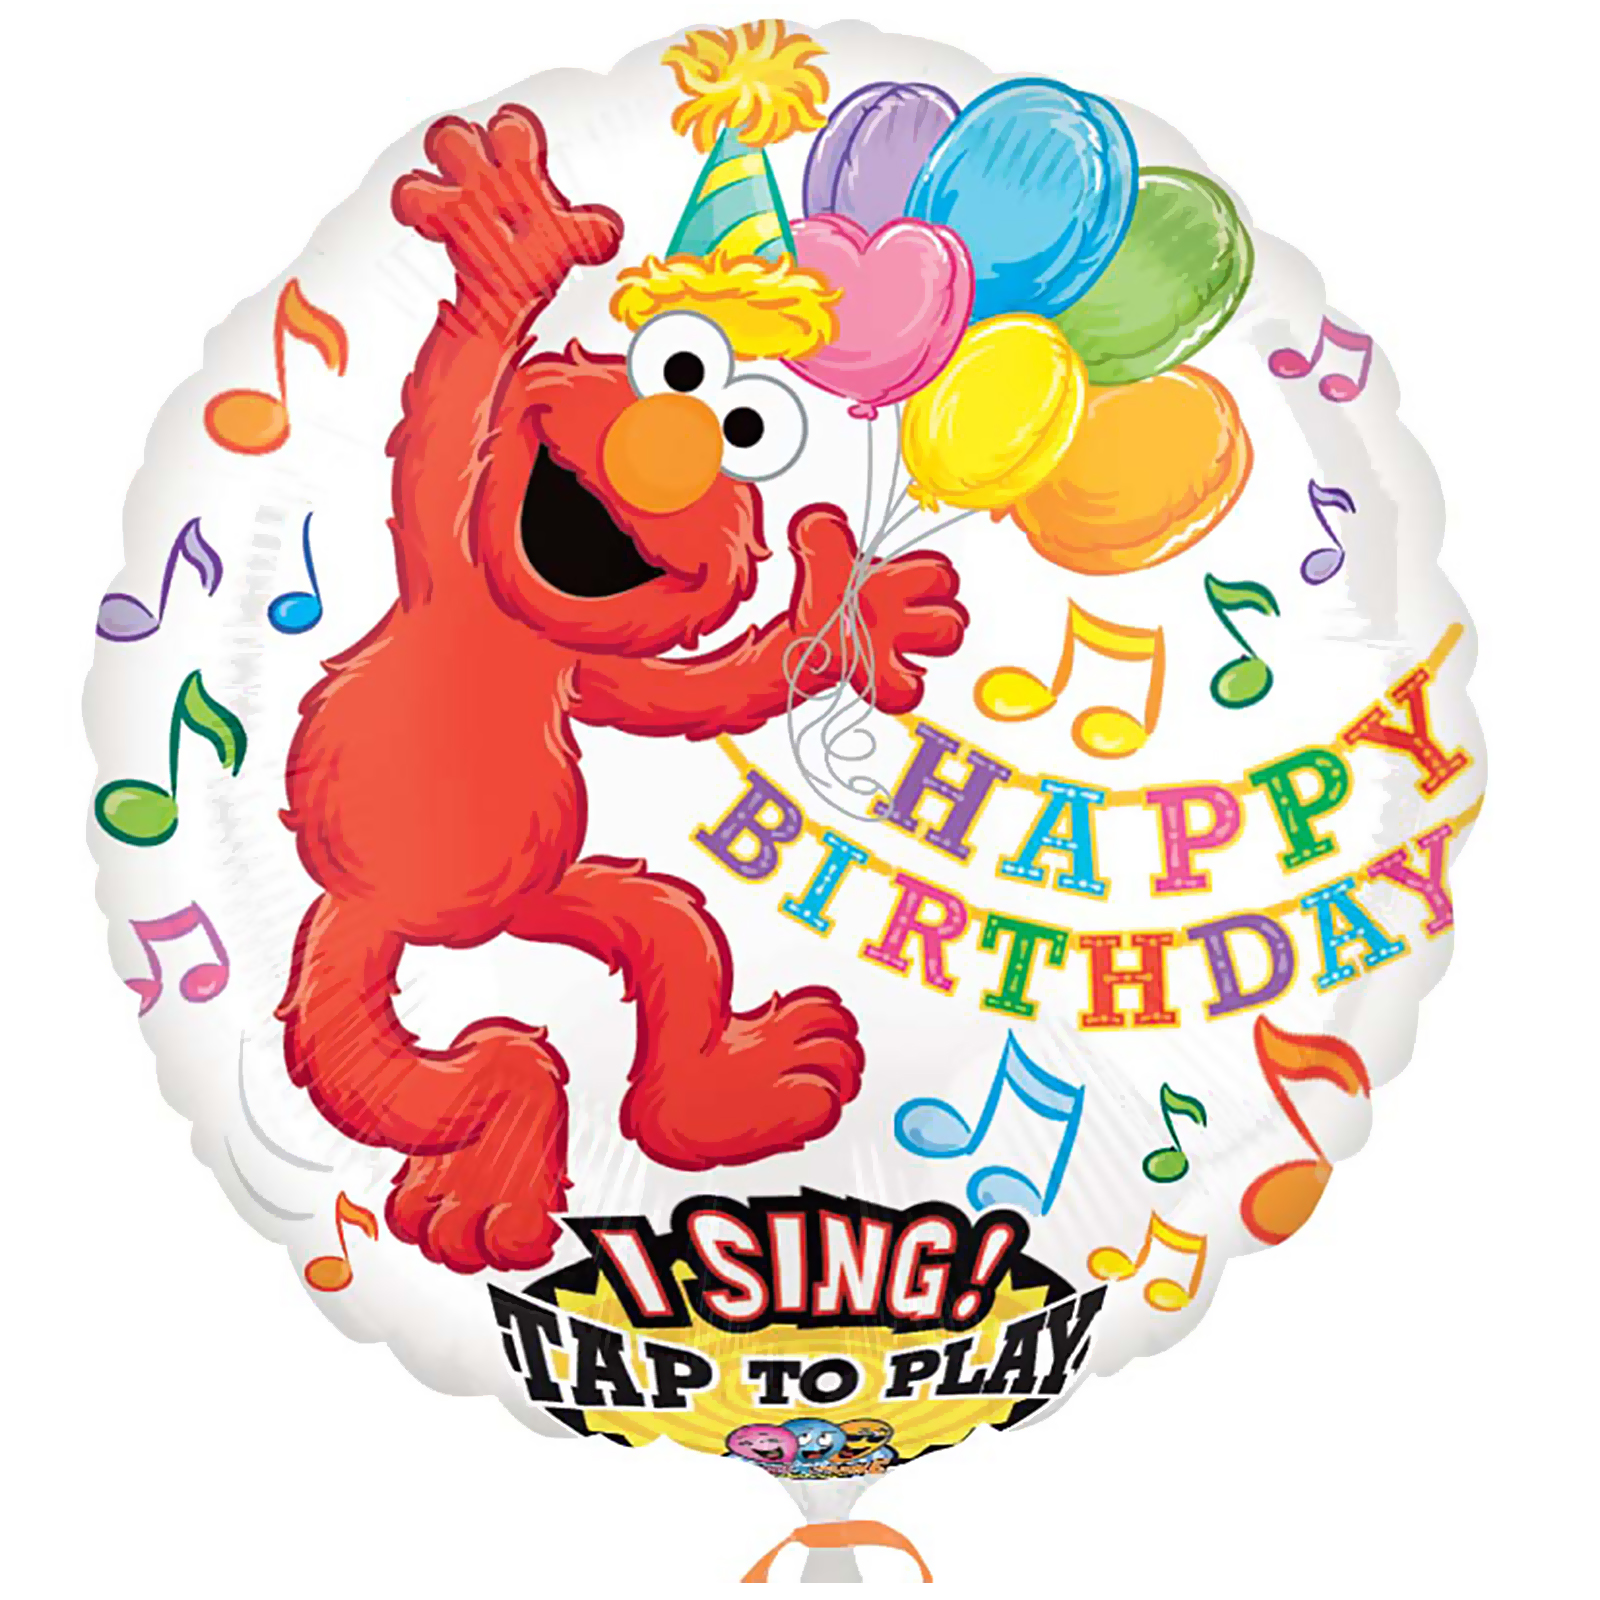 Quotes For A 2nd Birthday Elmo. QuotesGram